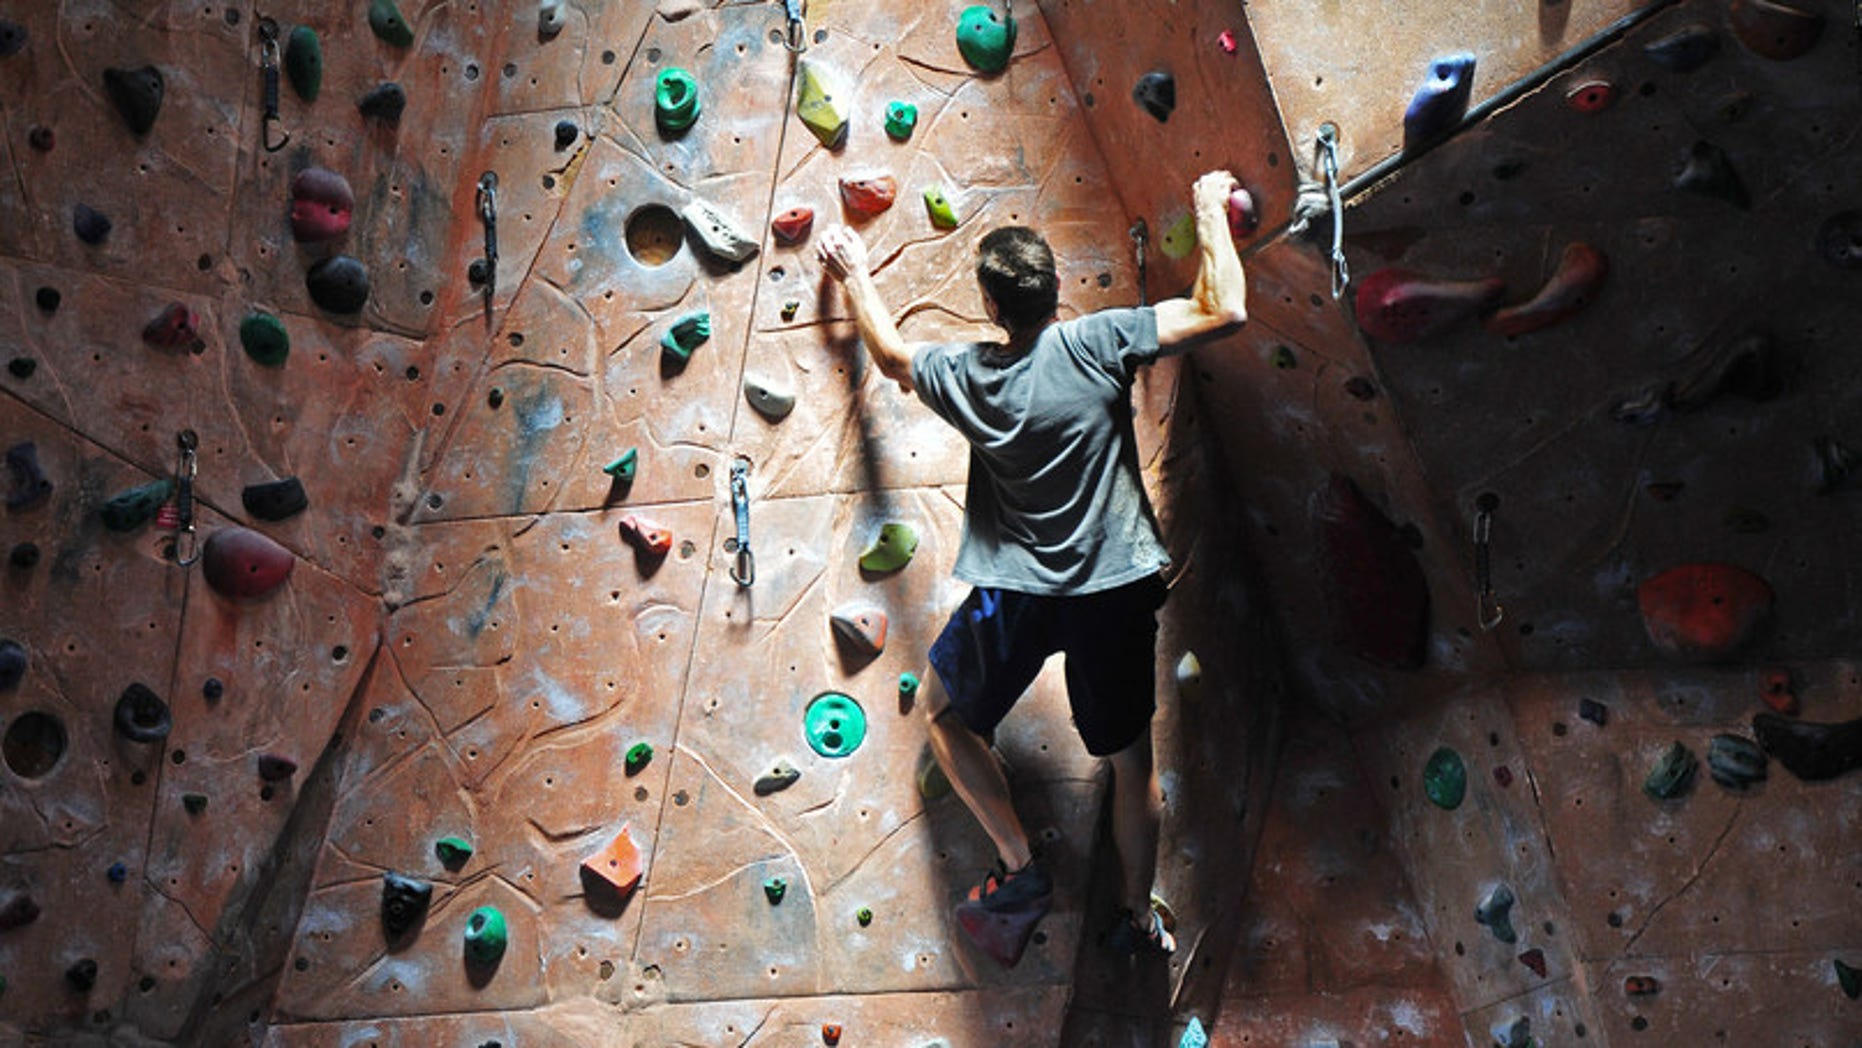 Rock climber on indoor climbing gym